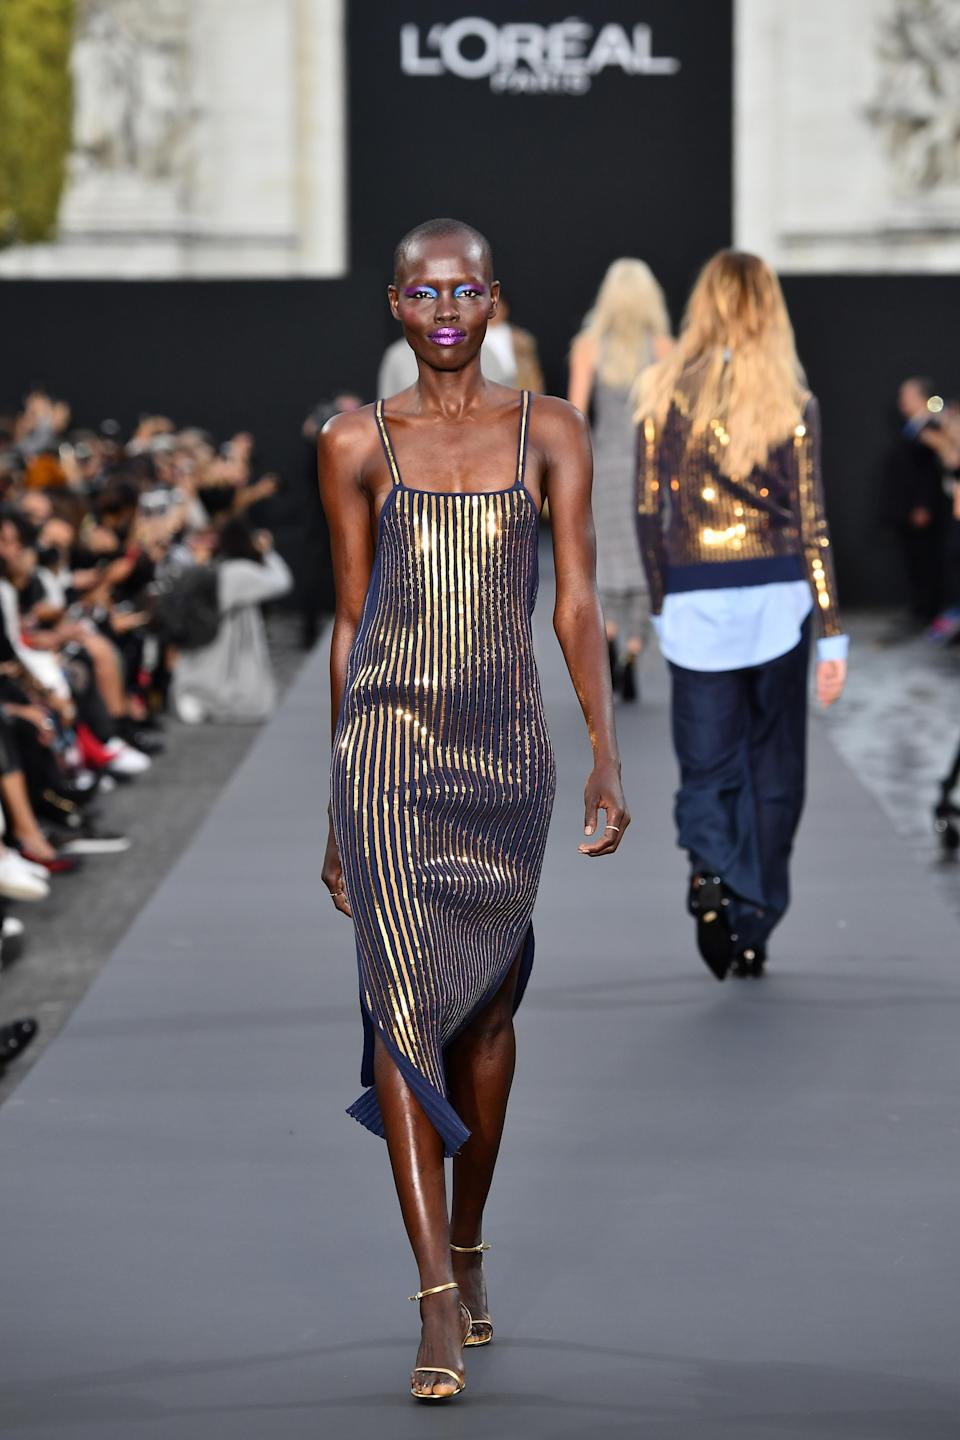 <p>The South Sudanese face stunned in bright make-up. <i>[Photo: L'Oreal Paris]</i> </p>